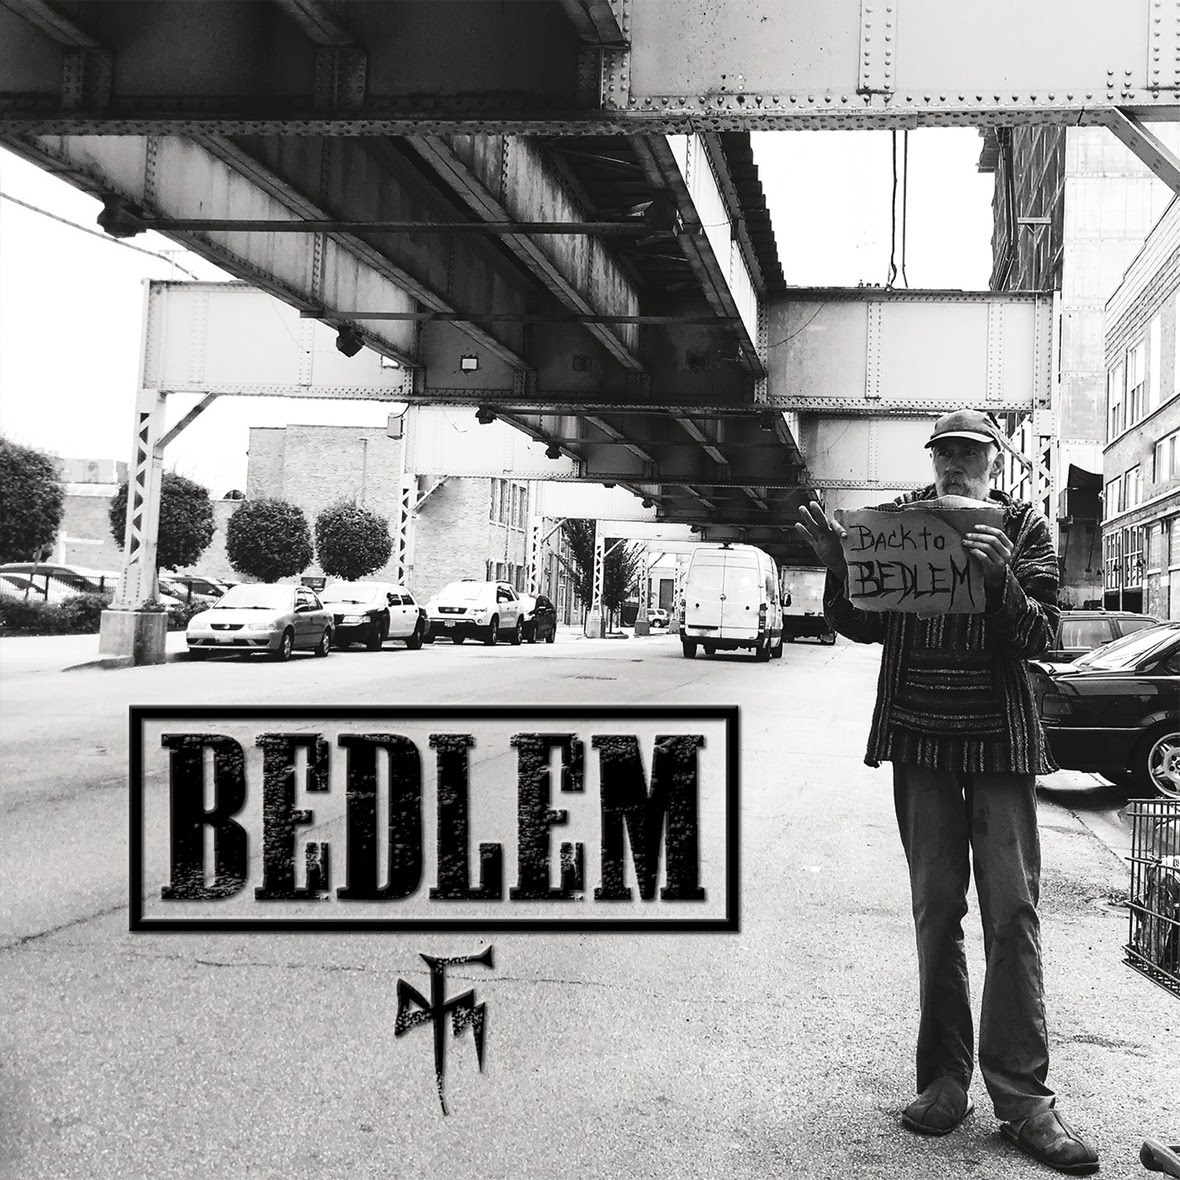 1 BEDLEM btb album DIGITAL COVER -0